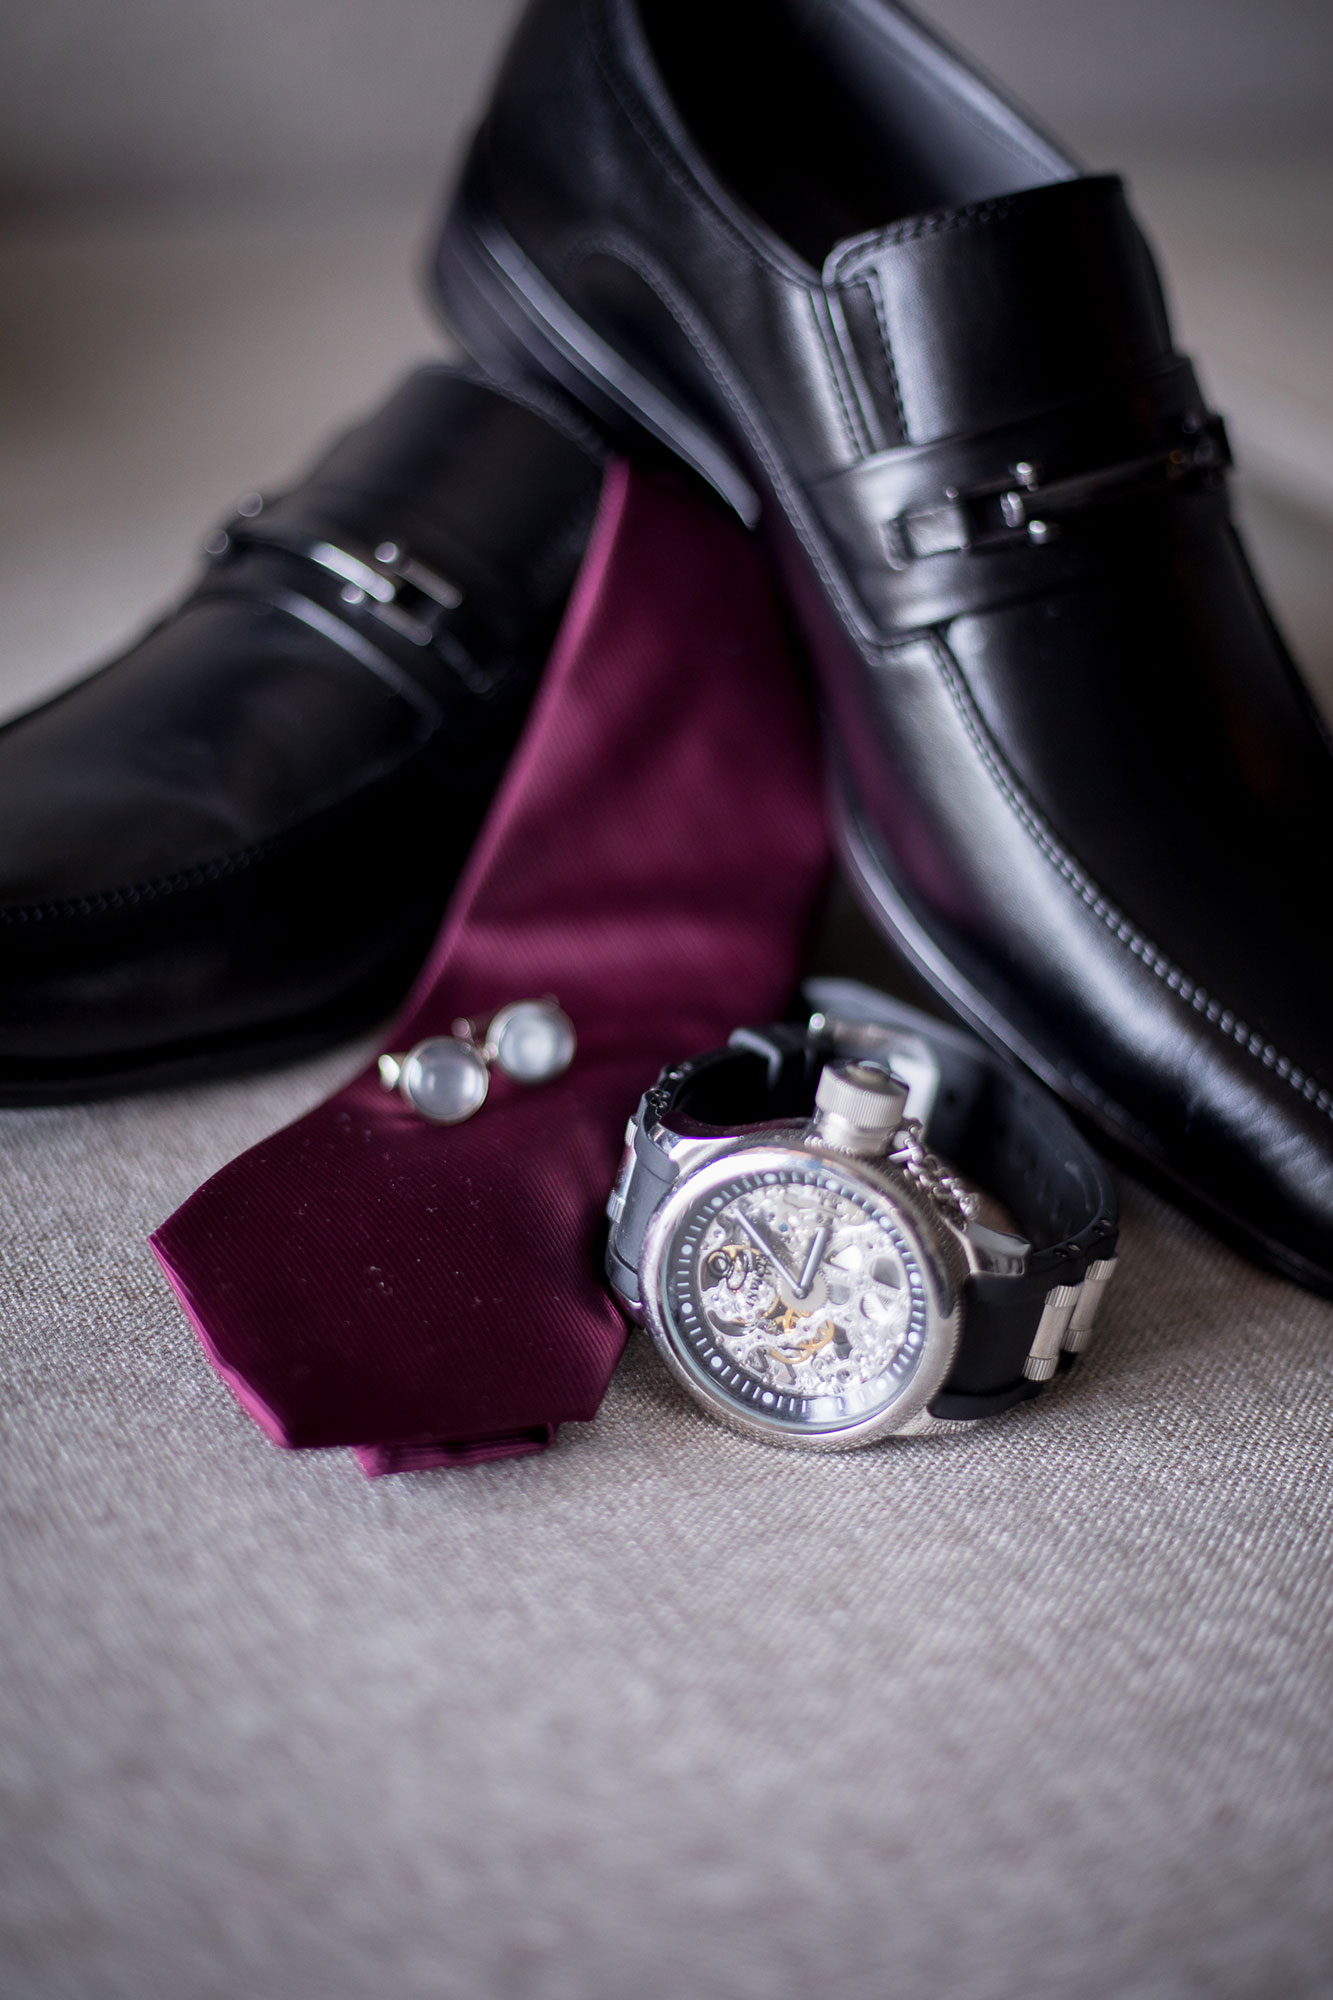 watch shoes tie and cufflinks while getting ready before wedding los angeles california Crystal lily photography